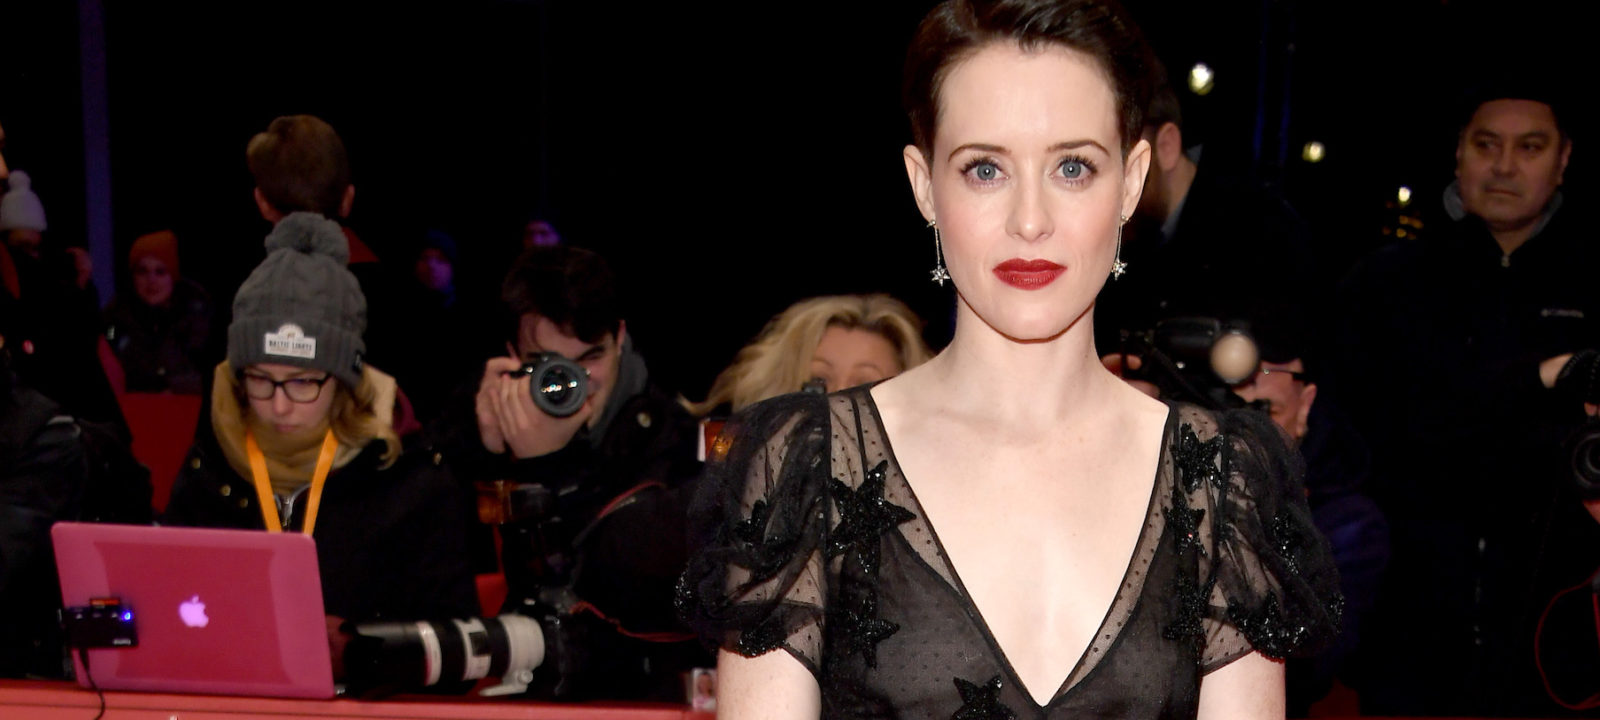 Claire Foy attends the 'Unsane' premiere during the 68th Berlinale International Film Festival Berlin at Berlinale Palast on February 21, 2018 in Berlin, Germany.